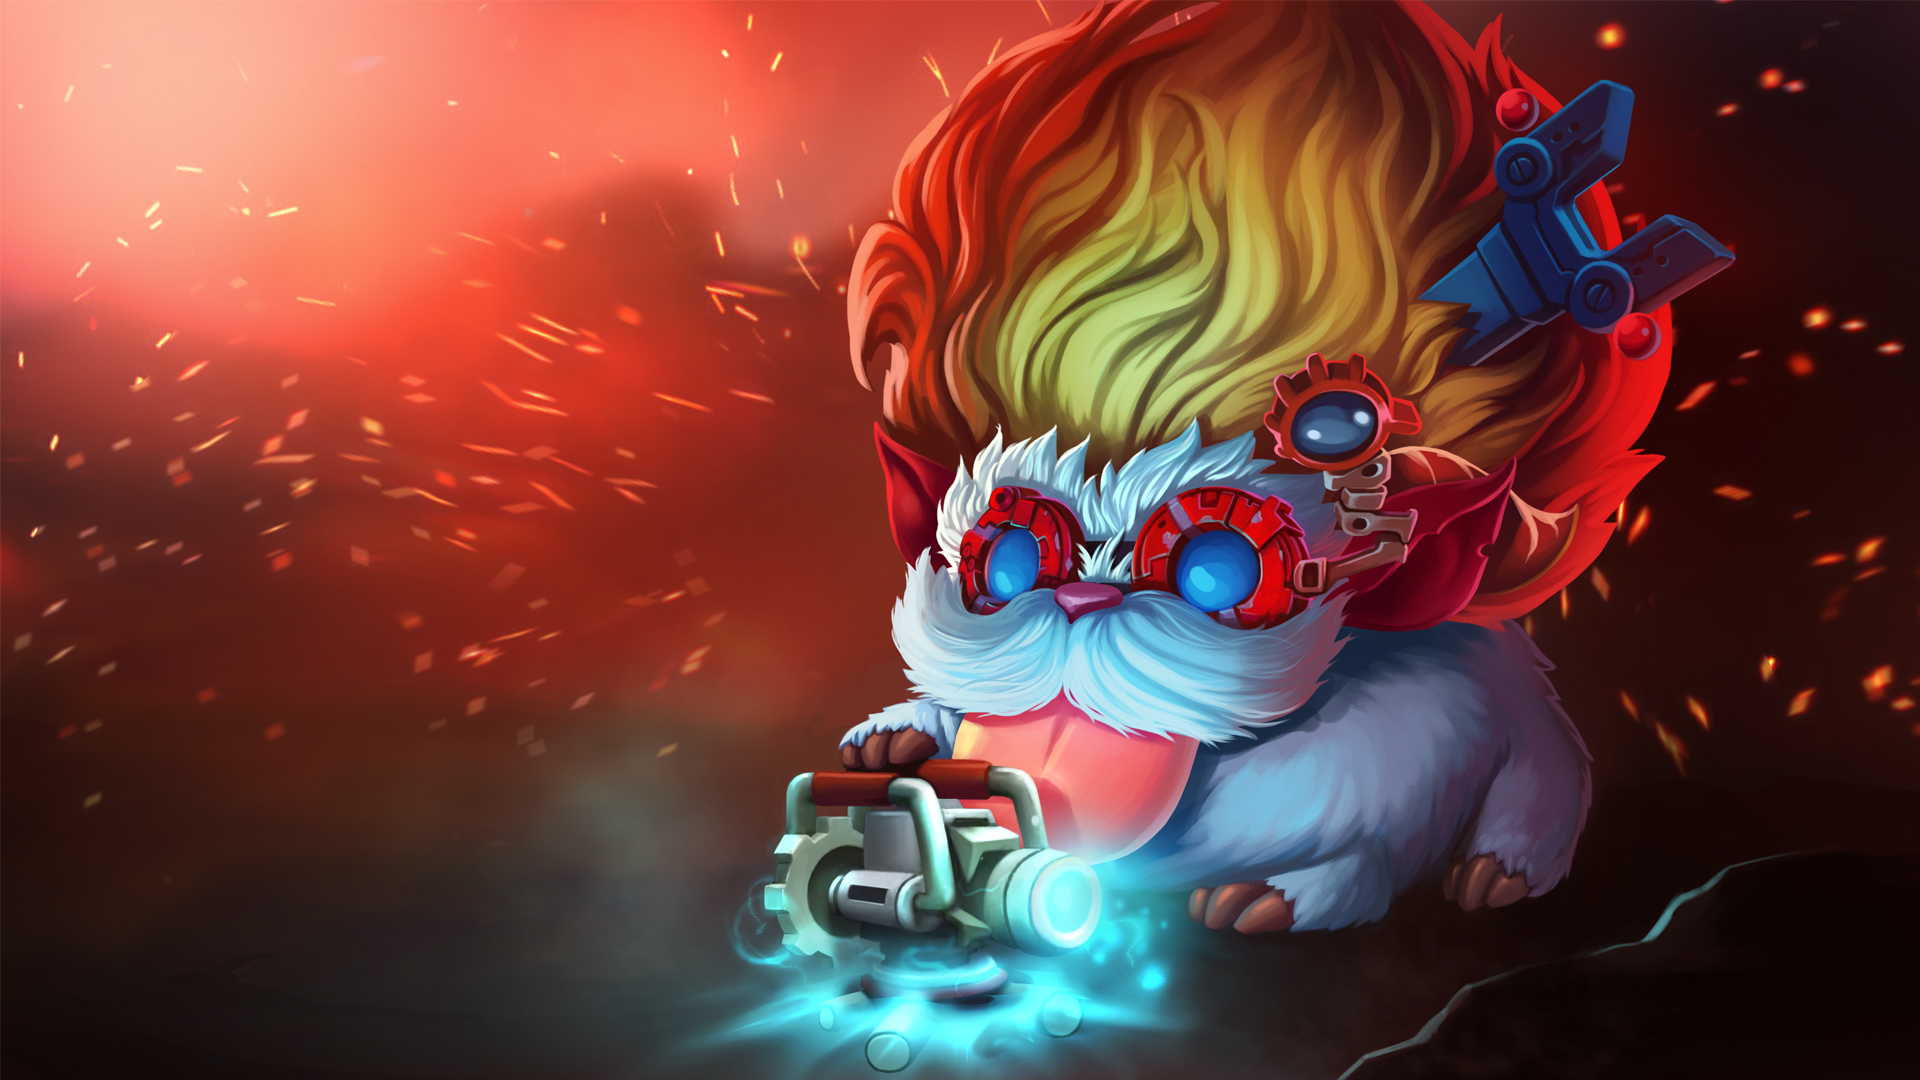 Heimerdinger Poro - Wallpapers HD